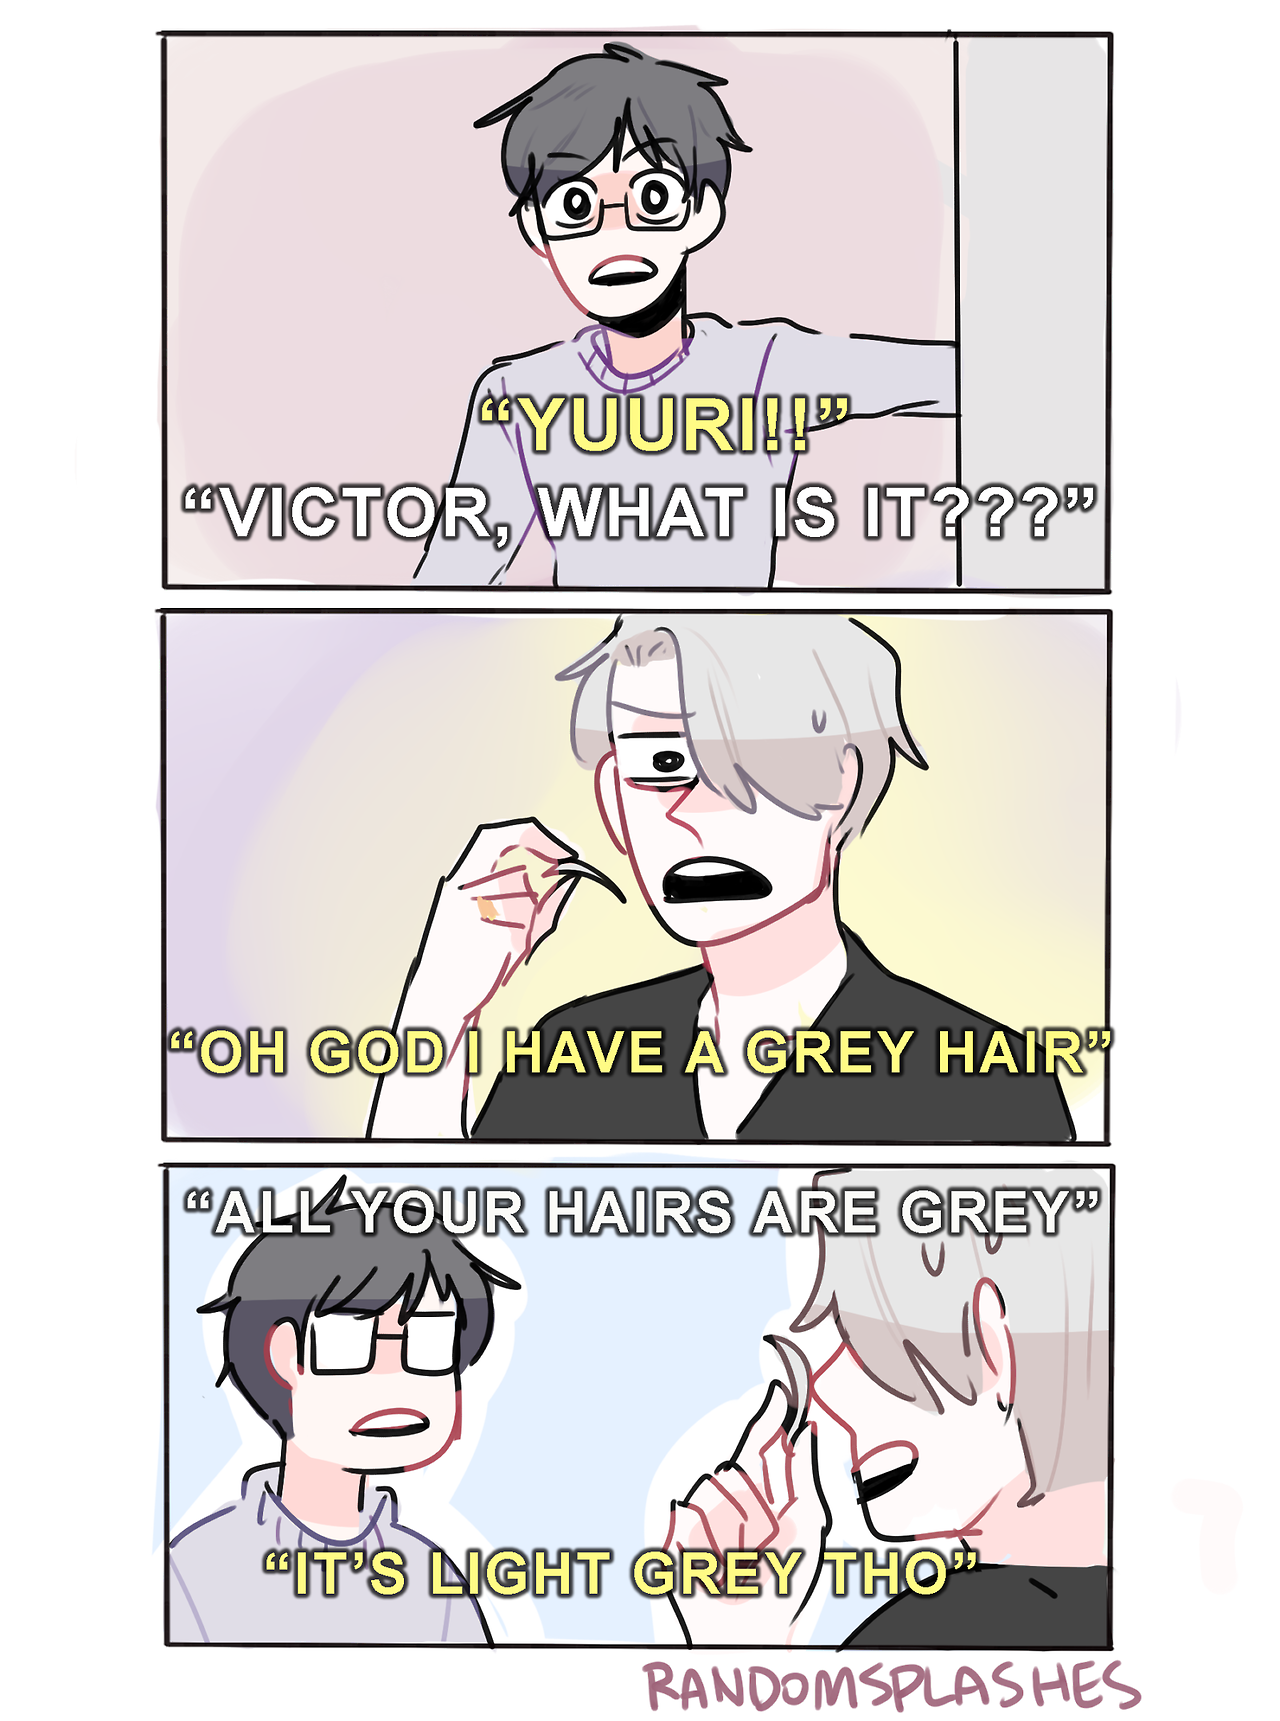 """randomsplashes: """"when your fiance has a midlife hair crisis at age 28 but you remind him that all of his hairs are grey (insp) """""""